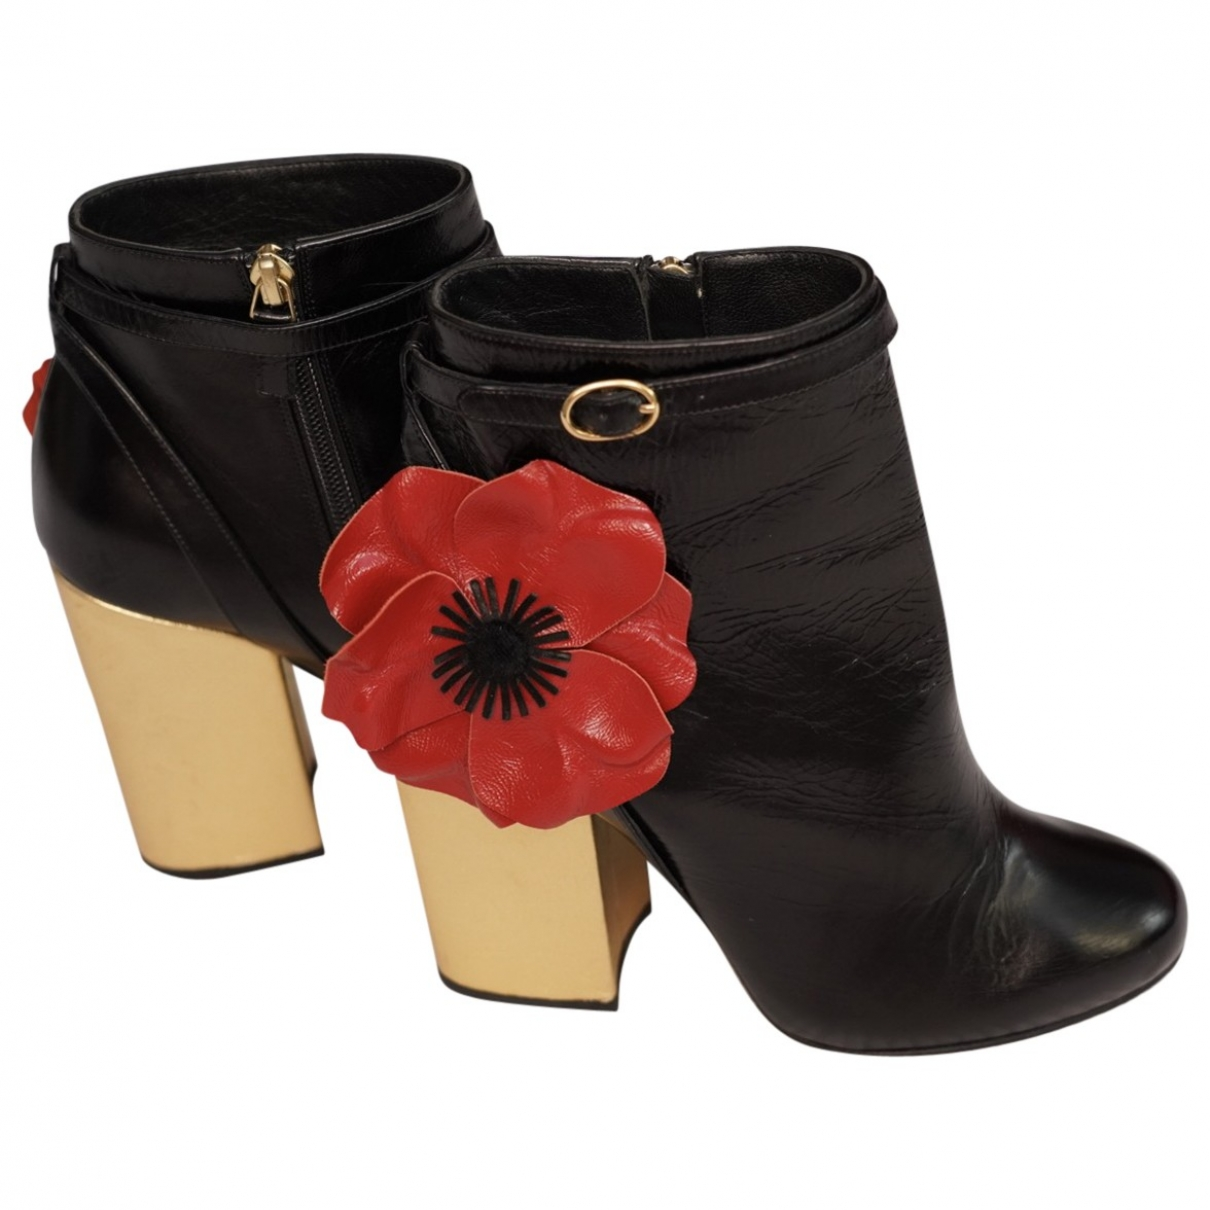 Laurence Dacade \N Black Leather Ankle boots for Women 37.5 EU